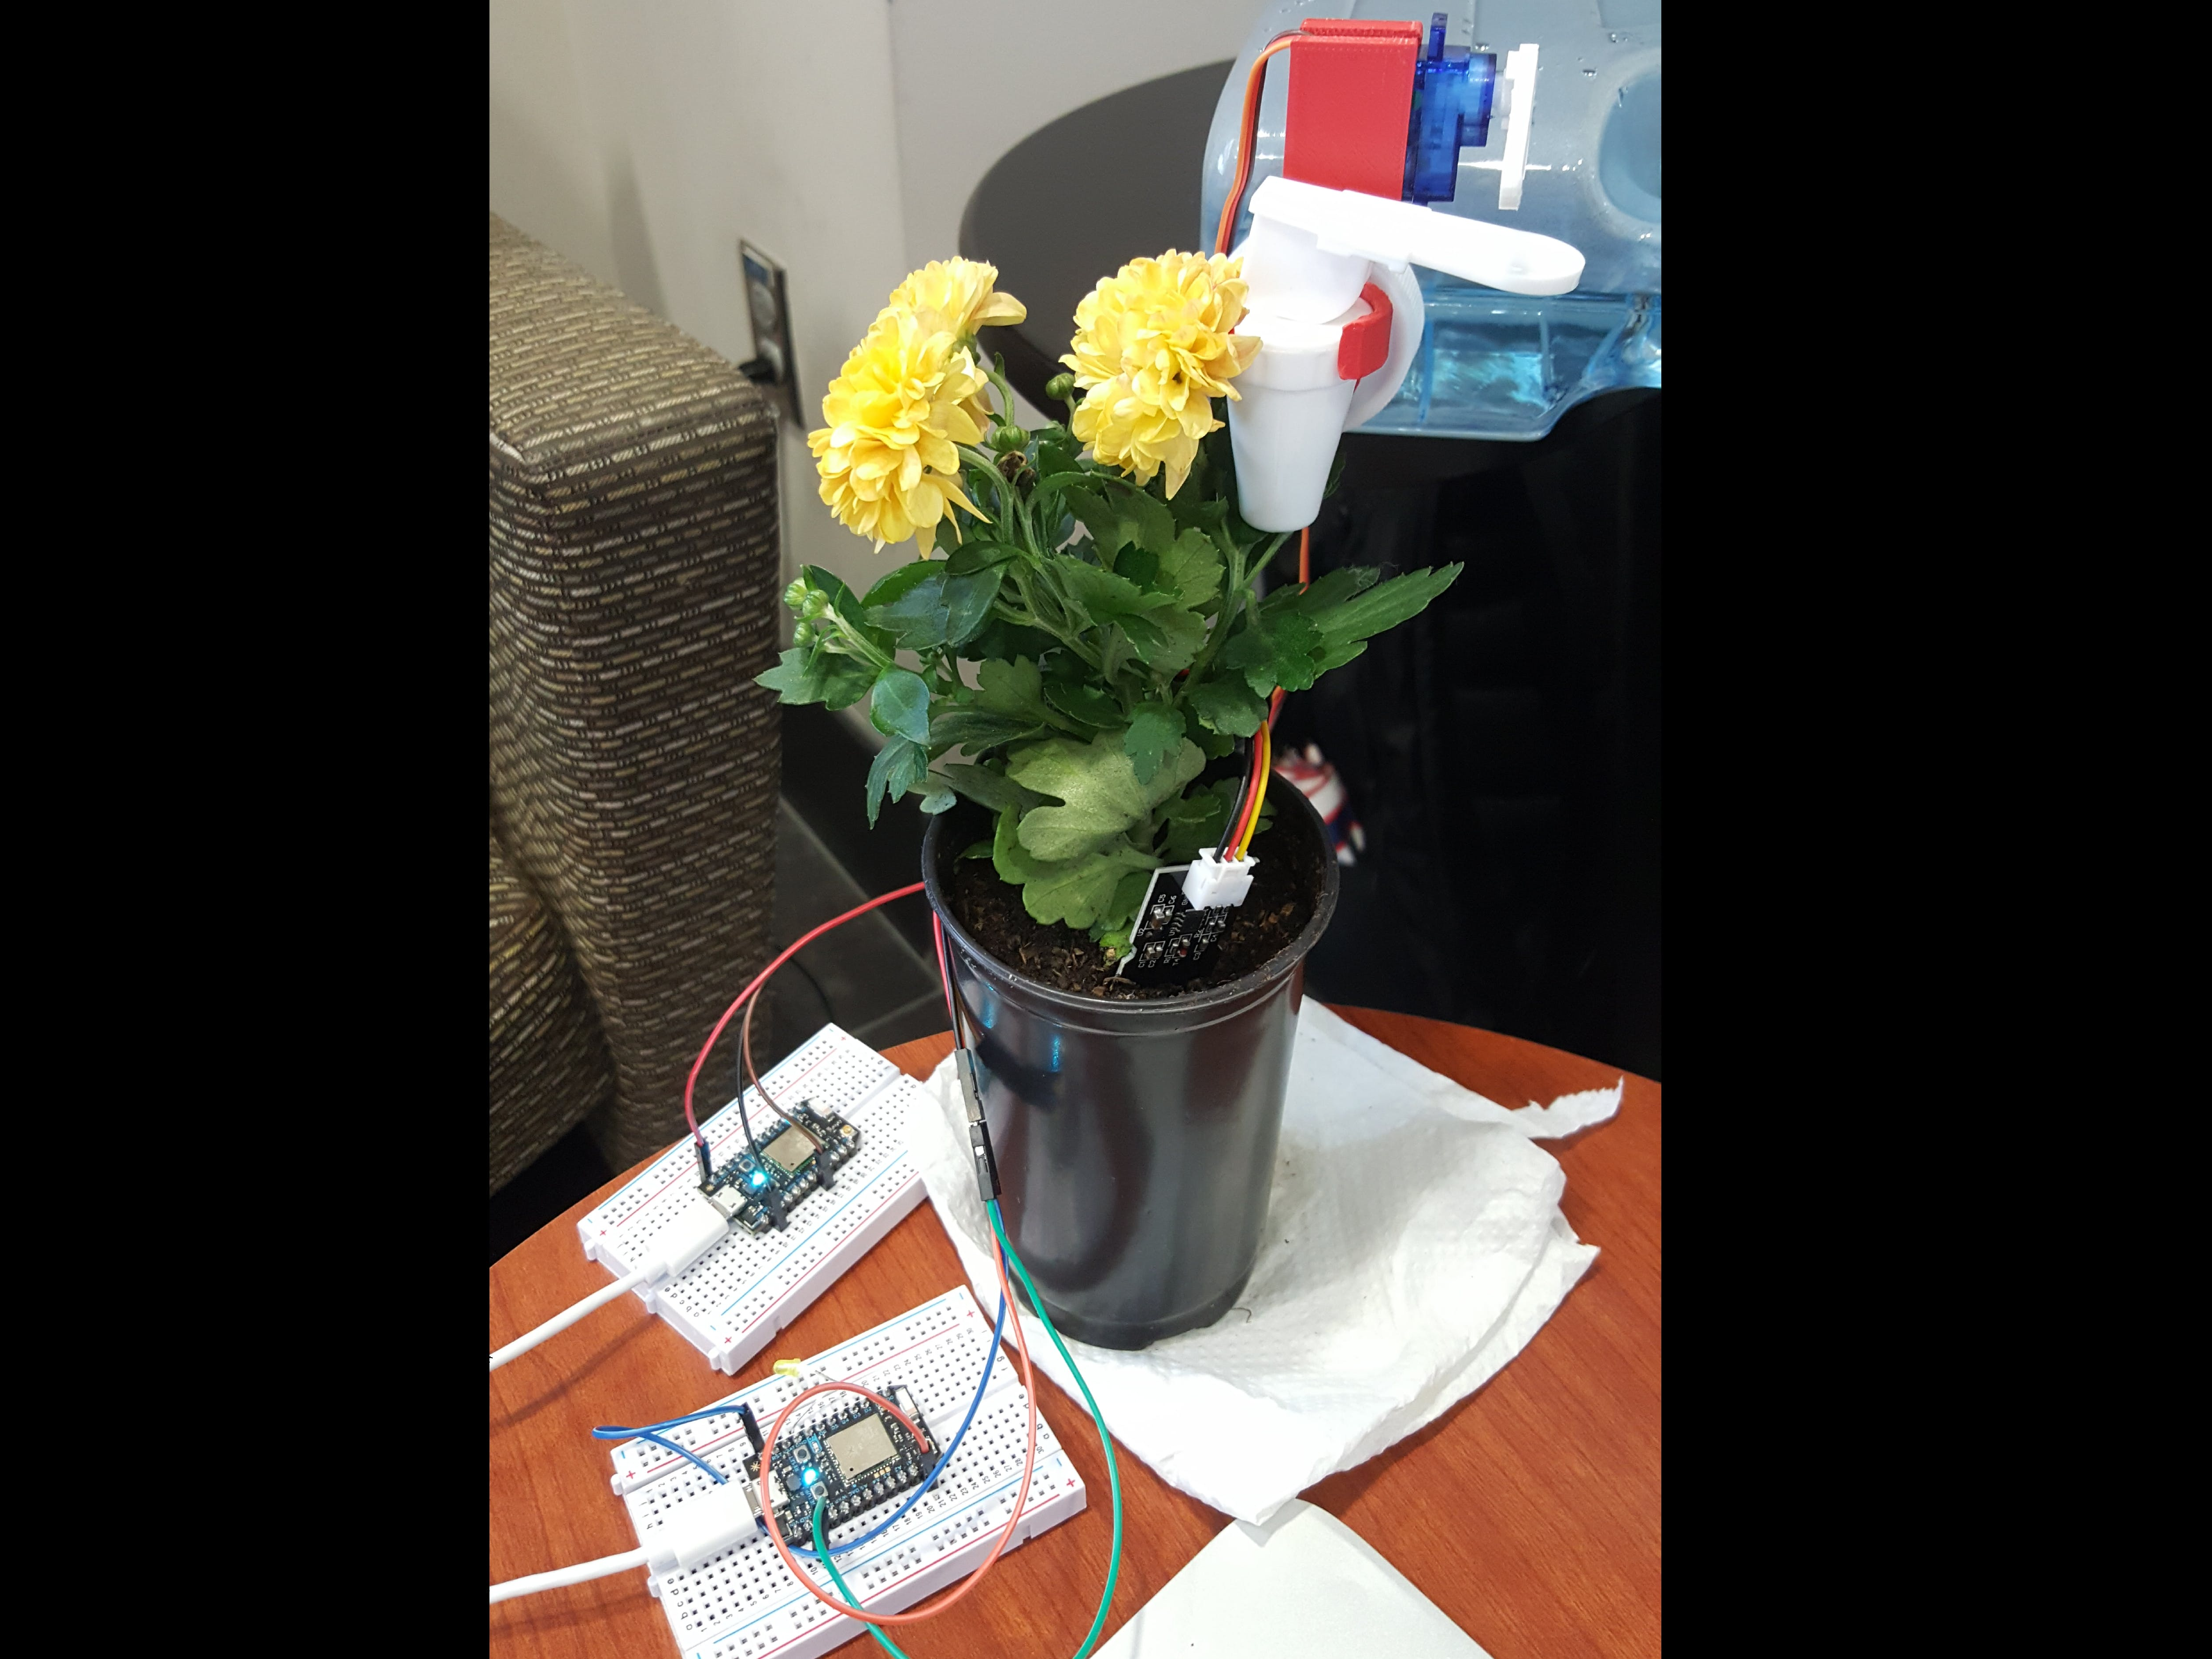 Automatic Plant Watering System Using Particle Photons